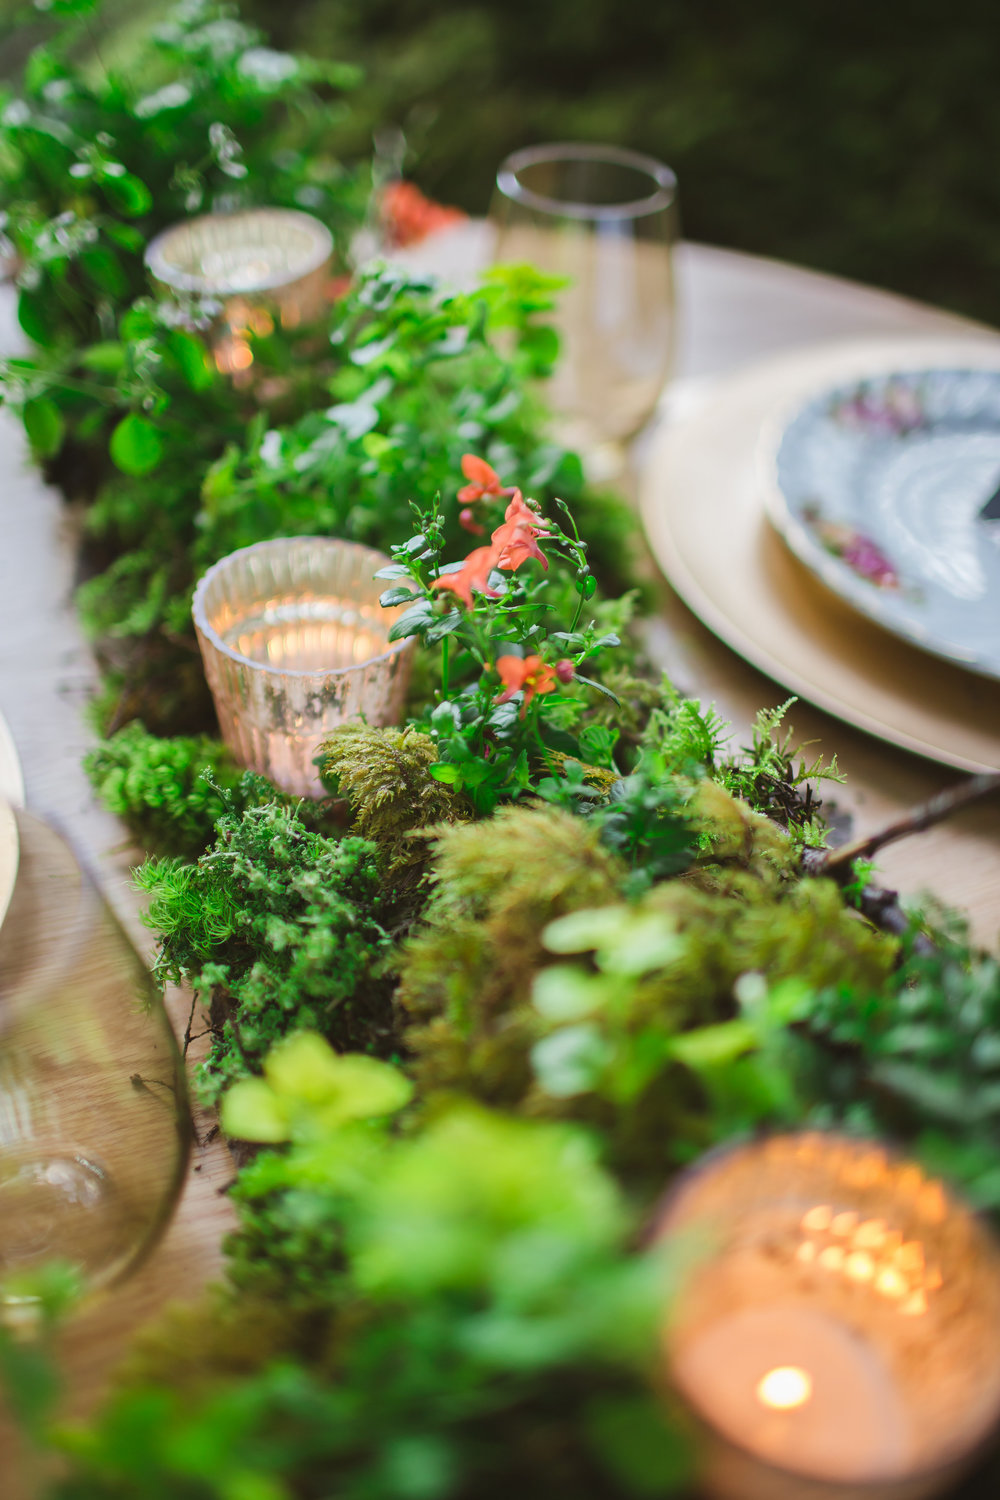 Woodland or Bohemian style centerpiece by Floral Design by Lili, Abbotsford Wedding Florist. Image by Rachel Barkman Photography